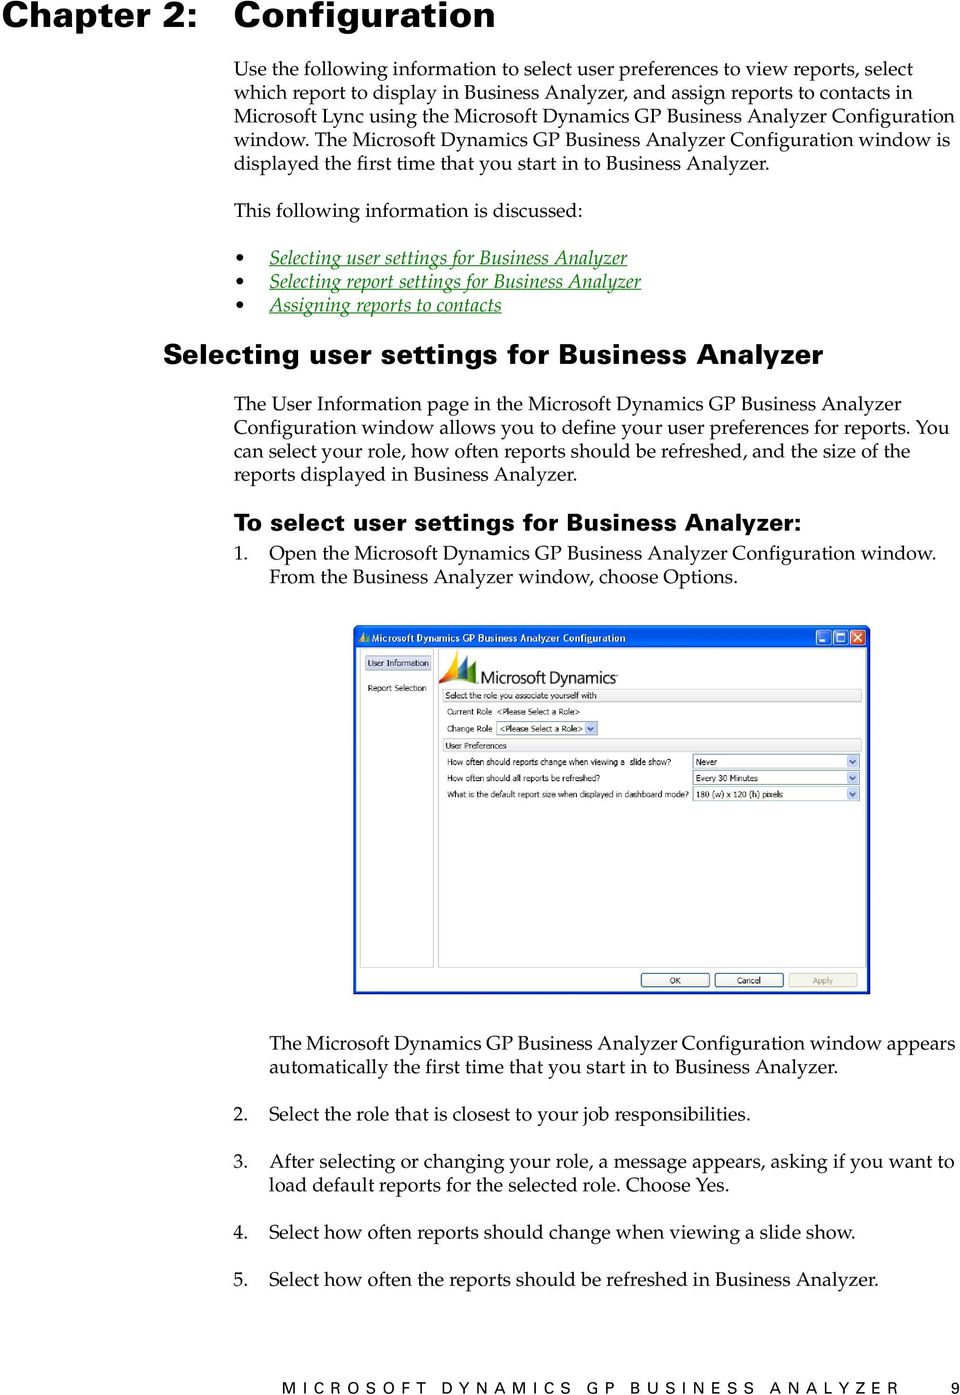 The Microsoft Dynamics GP Business Analyzer Configuration window is displayed the first time that you start in to Business Analyzer.